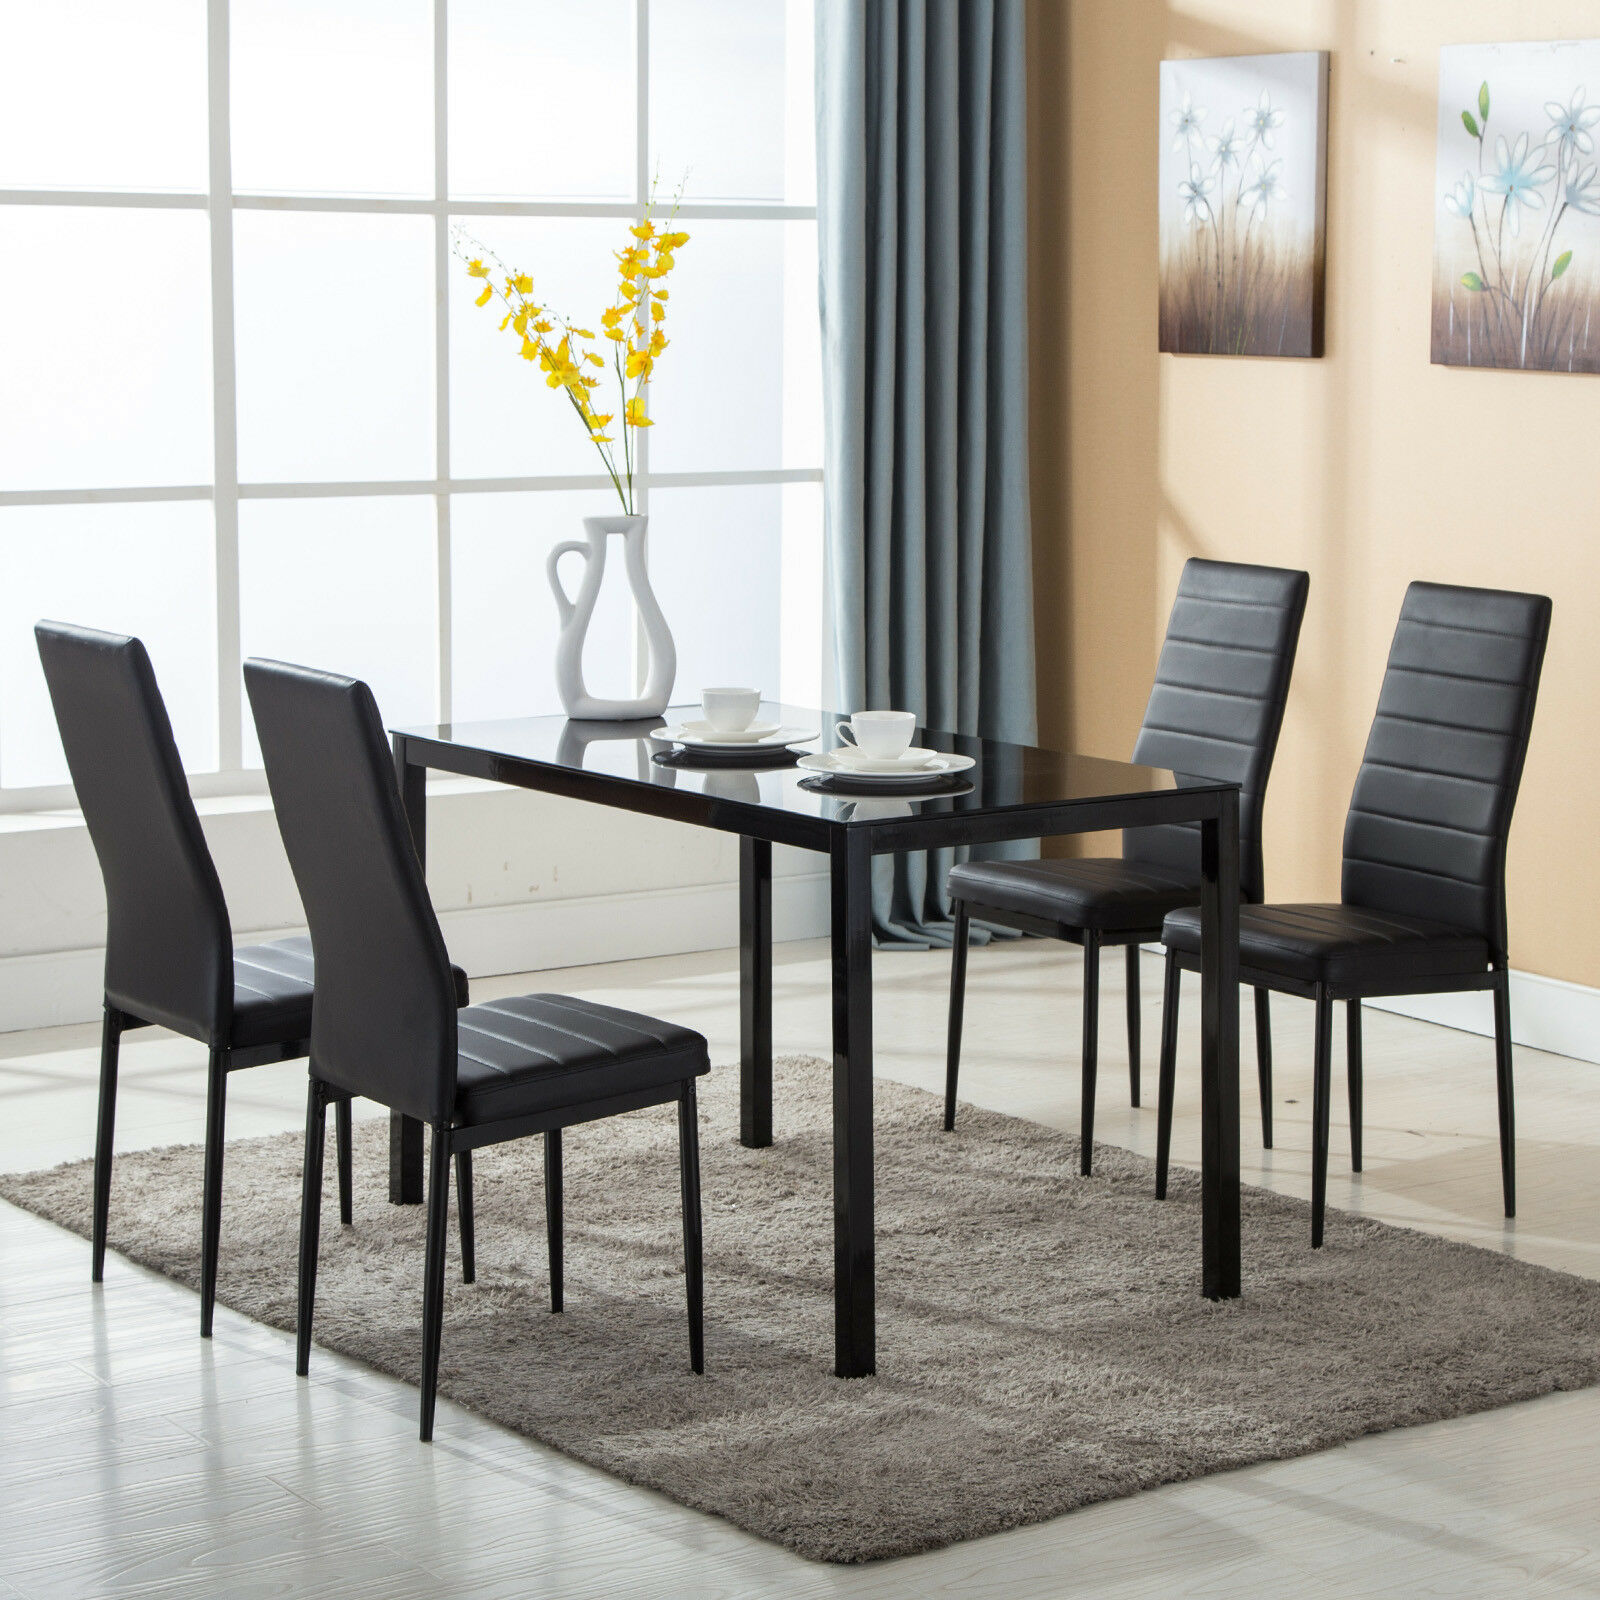 Superbe Details About 5 Piece Dining Table Set 4 Chairs Glass Metal Kitchen Room  Breakfast Furniture